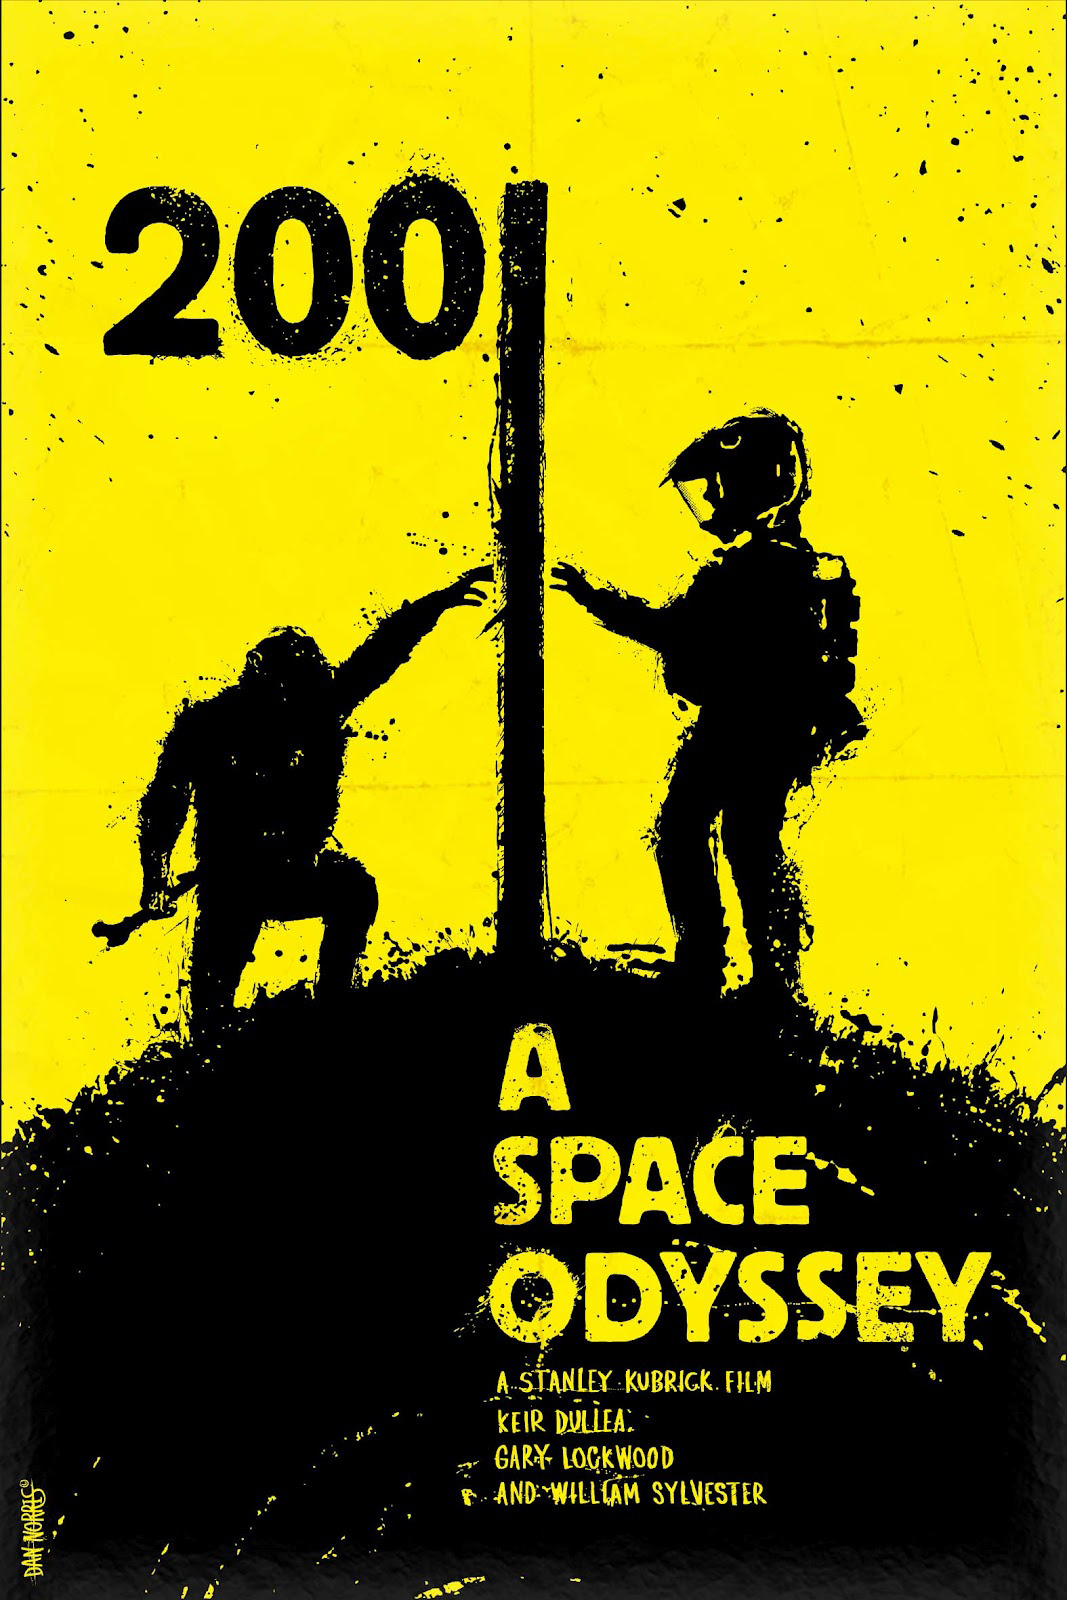 By Daniel Norris : 2001 A Space Odyssey by Stanley Kubrick (1968)